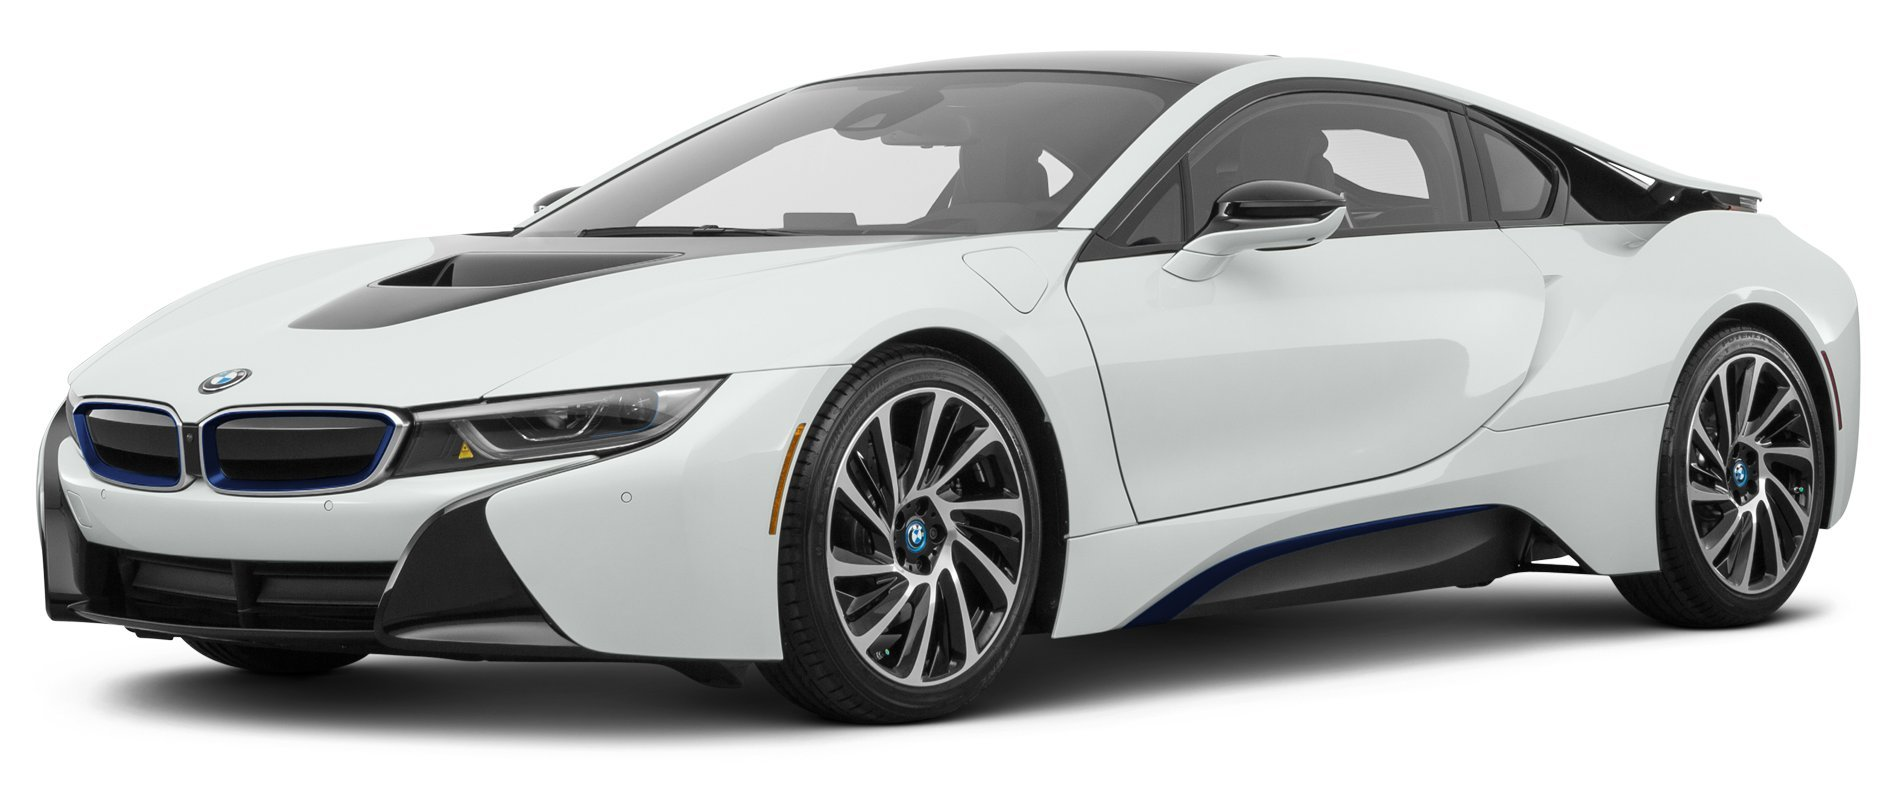 2016 BMW I8 2 Door Coupe